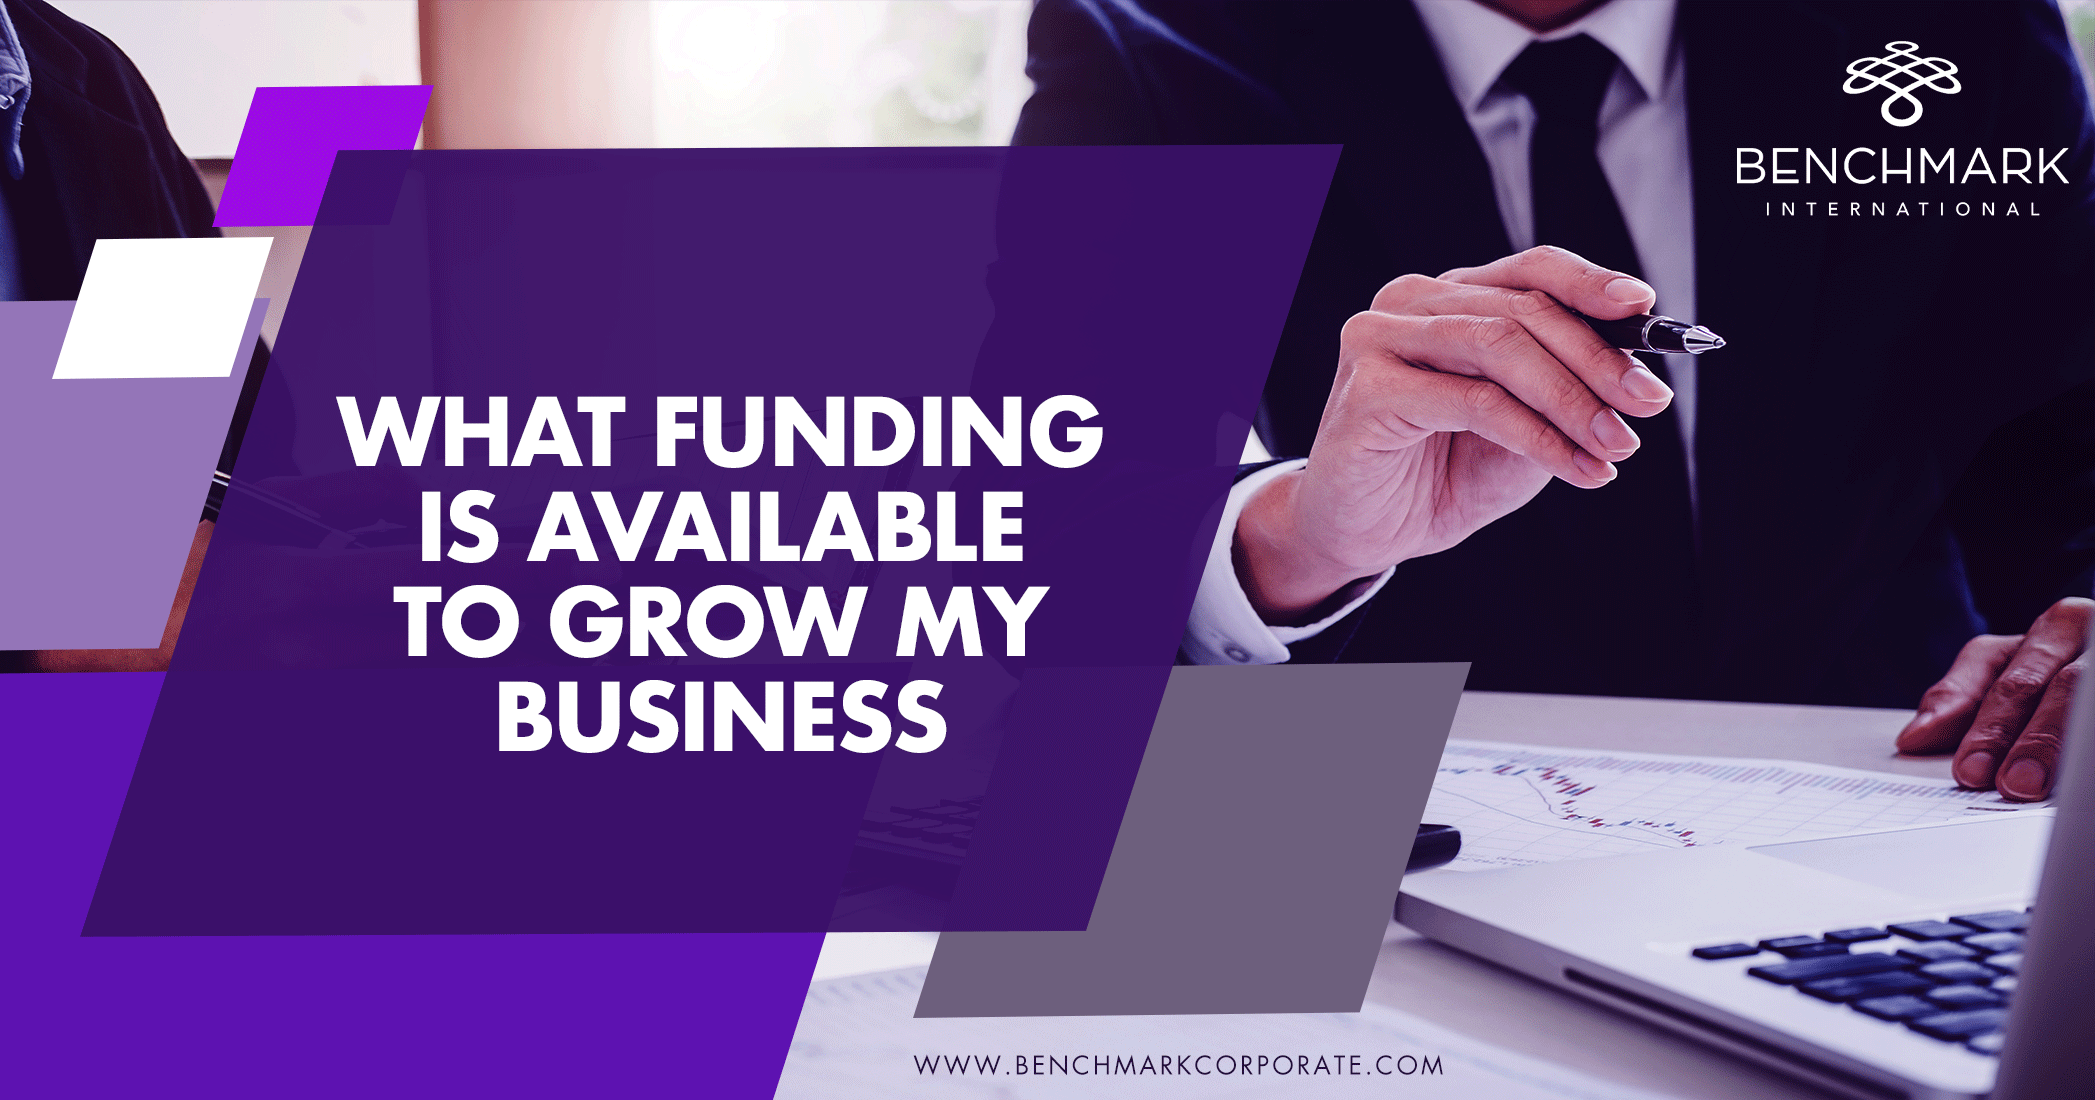 What Funding is Available to Grow my Business?